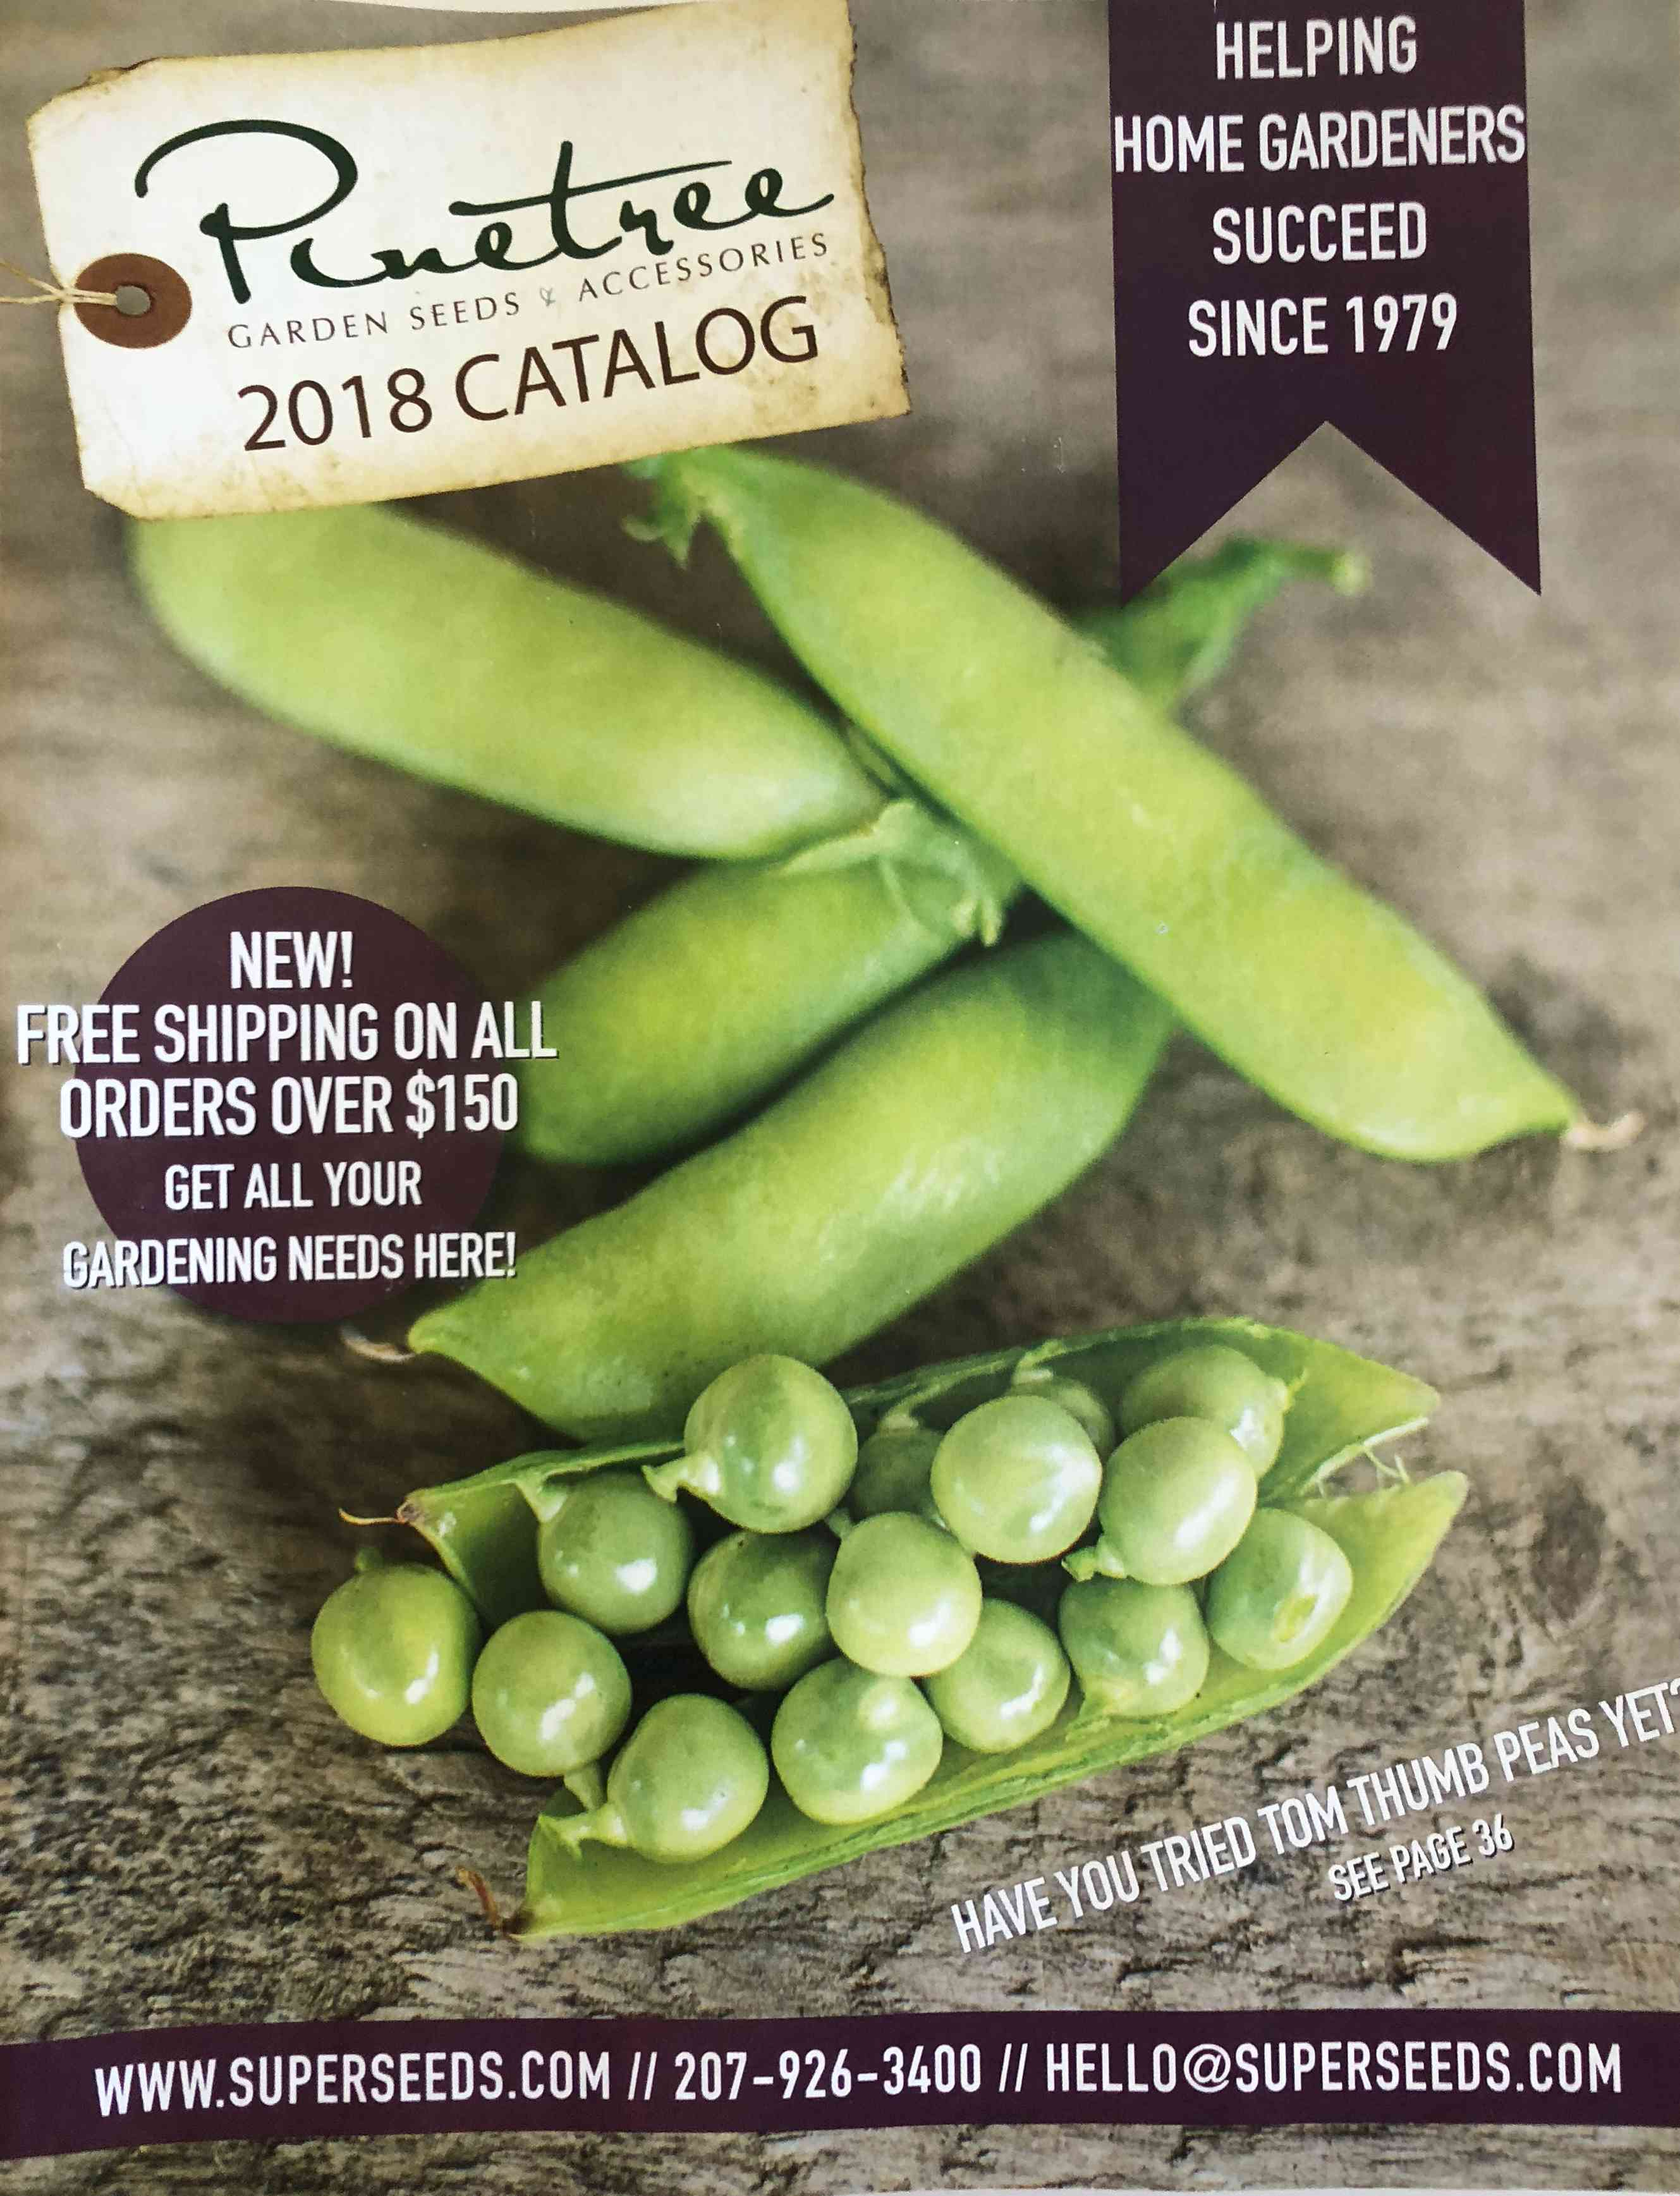 The Pinetree Garden Seeds 2018 seed catalog